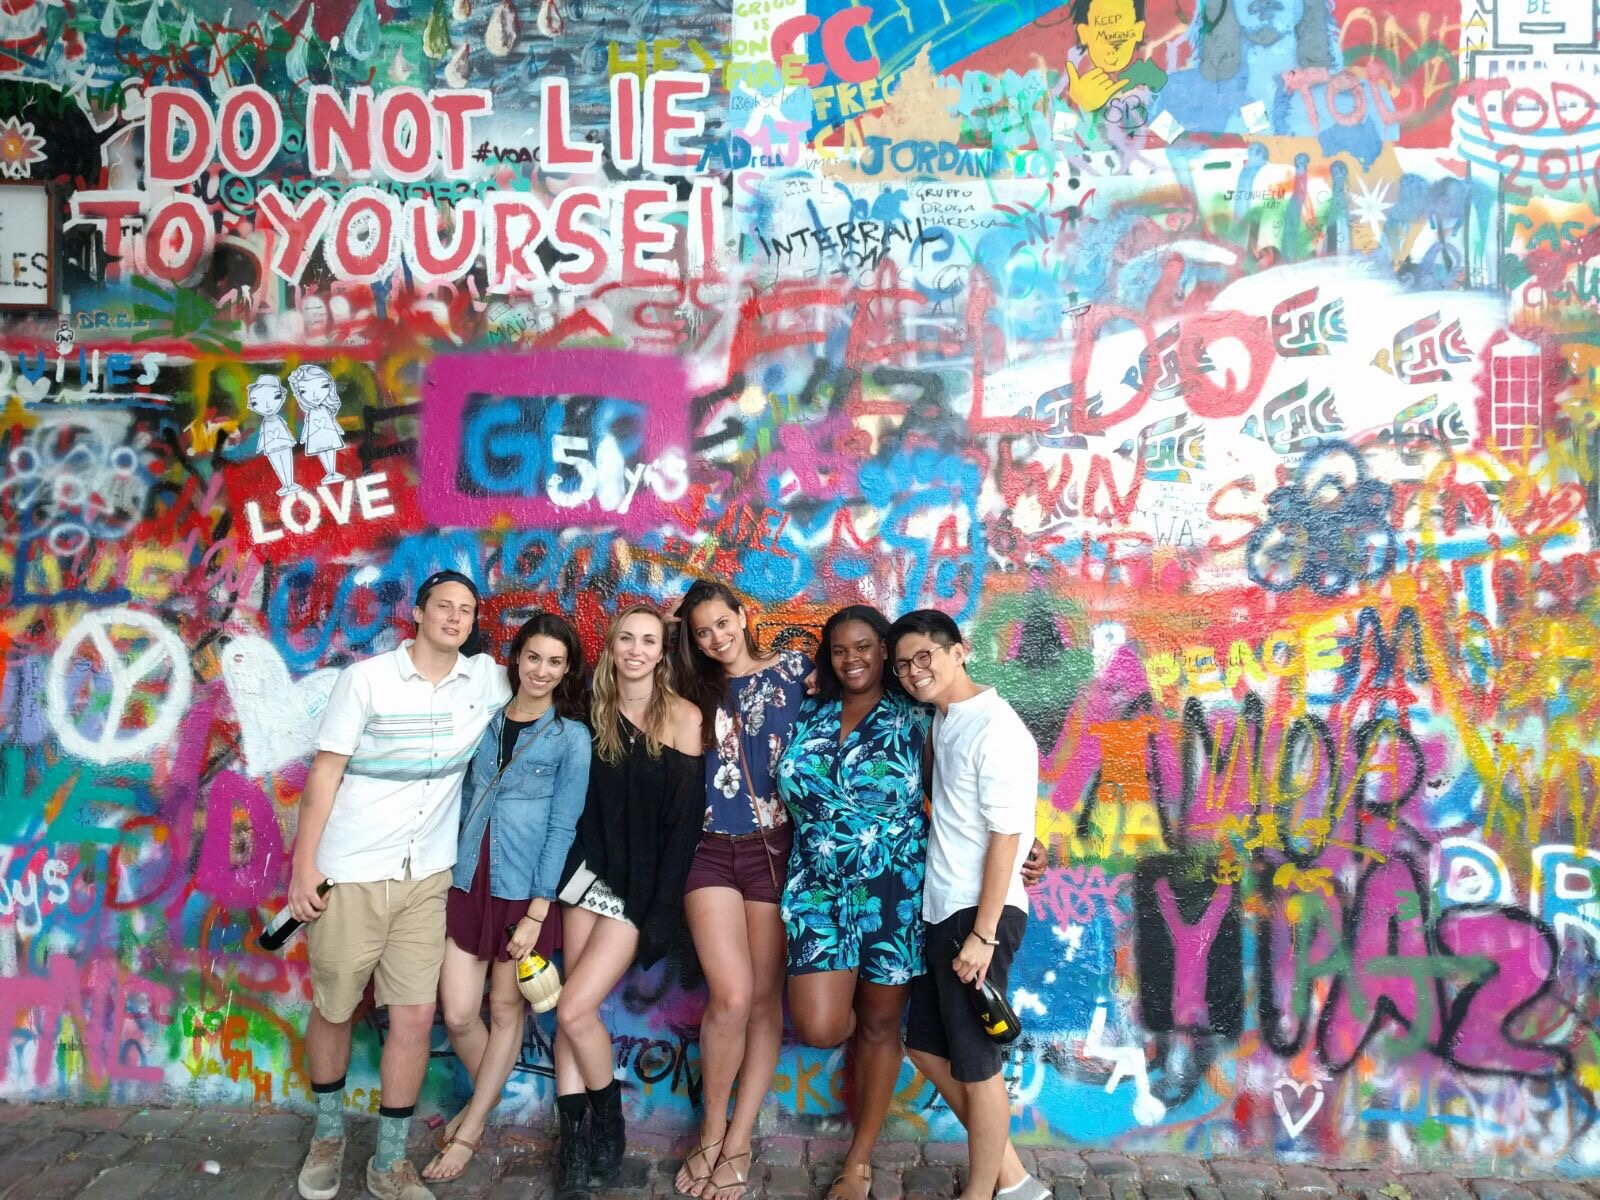 The John Lennon wall was a significant symbol for those against the Communist regime in Prague, and today continues to be a place of ever-changing graffiti. It also exudes feelings of love against war, a fitting sentiment for our group this month.